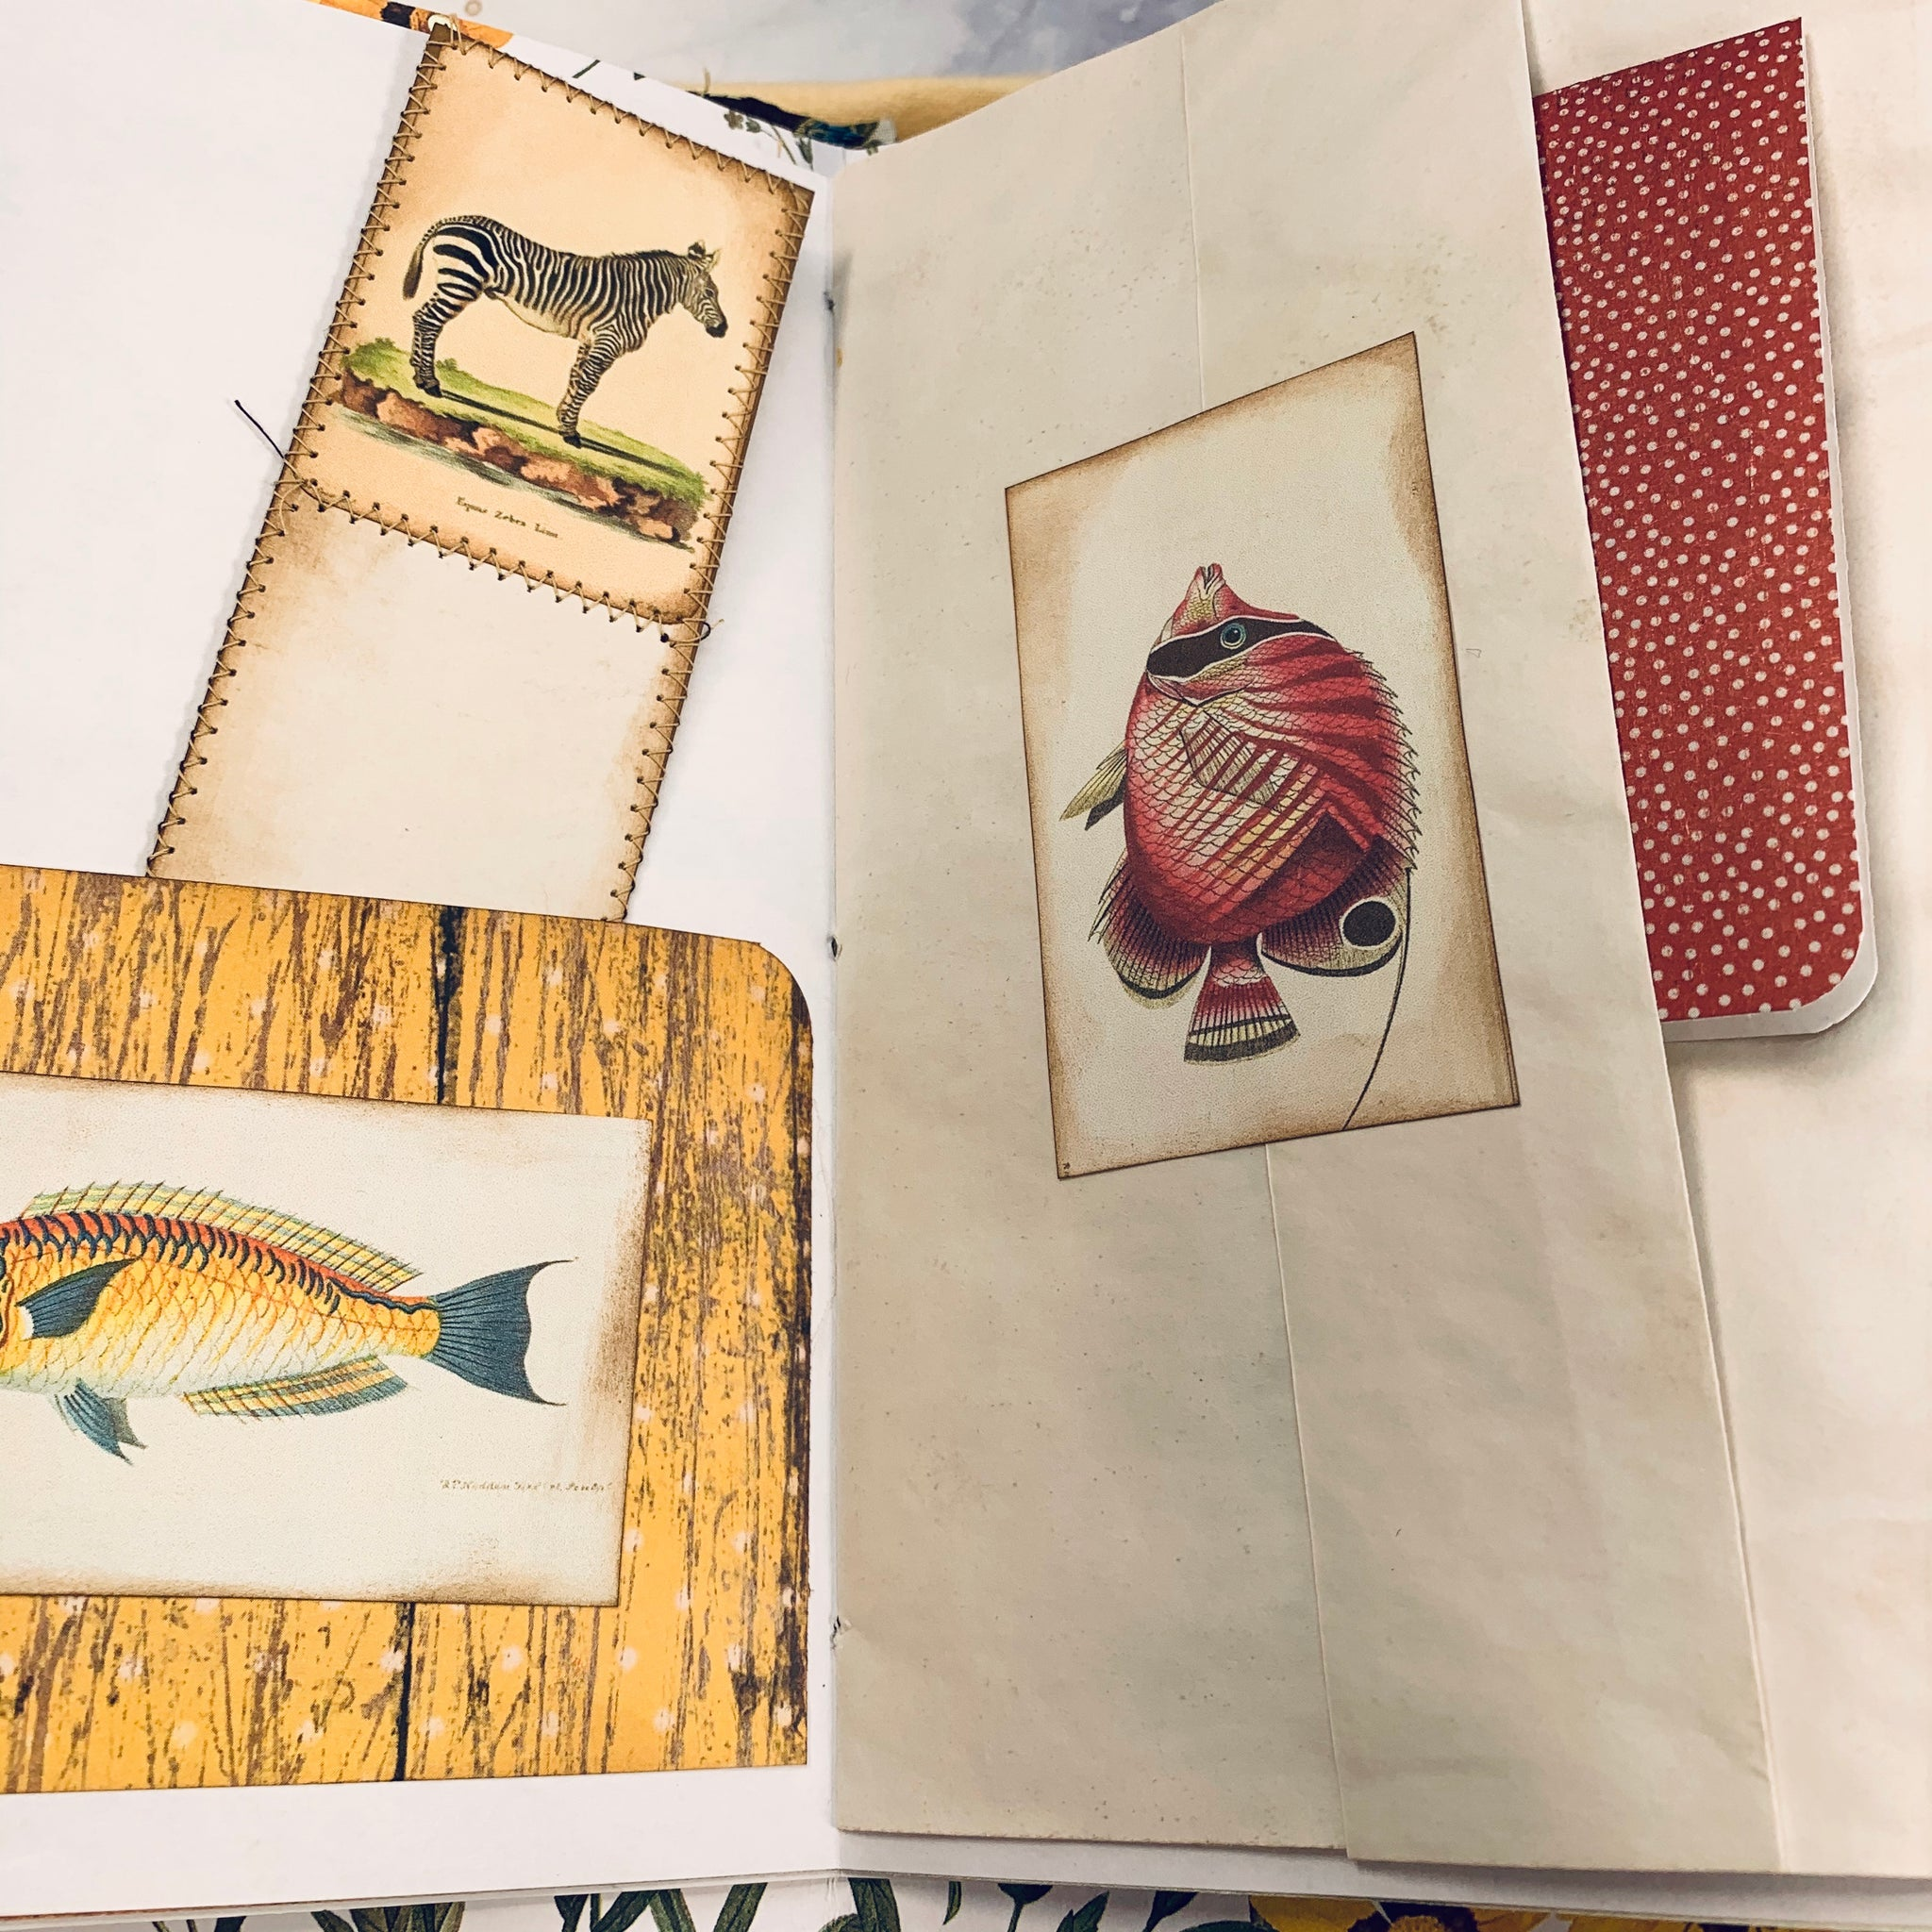 Junk Journal set of 2 by Kristin Saunders (January Challenge)